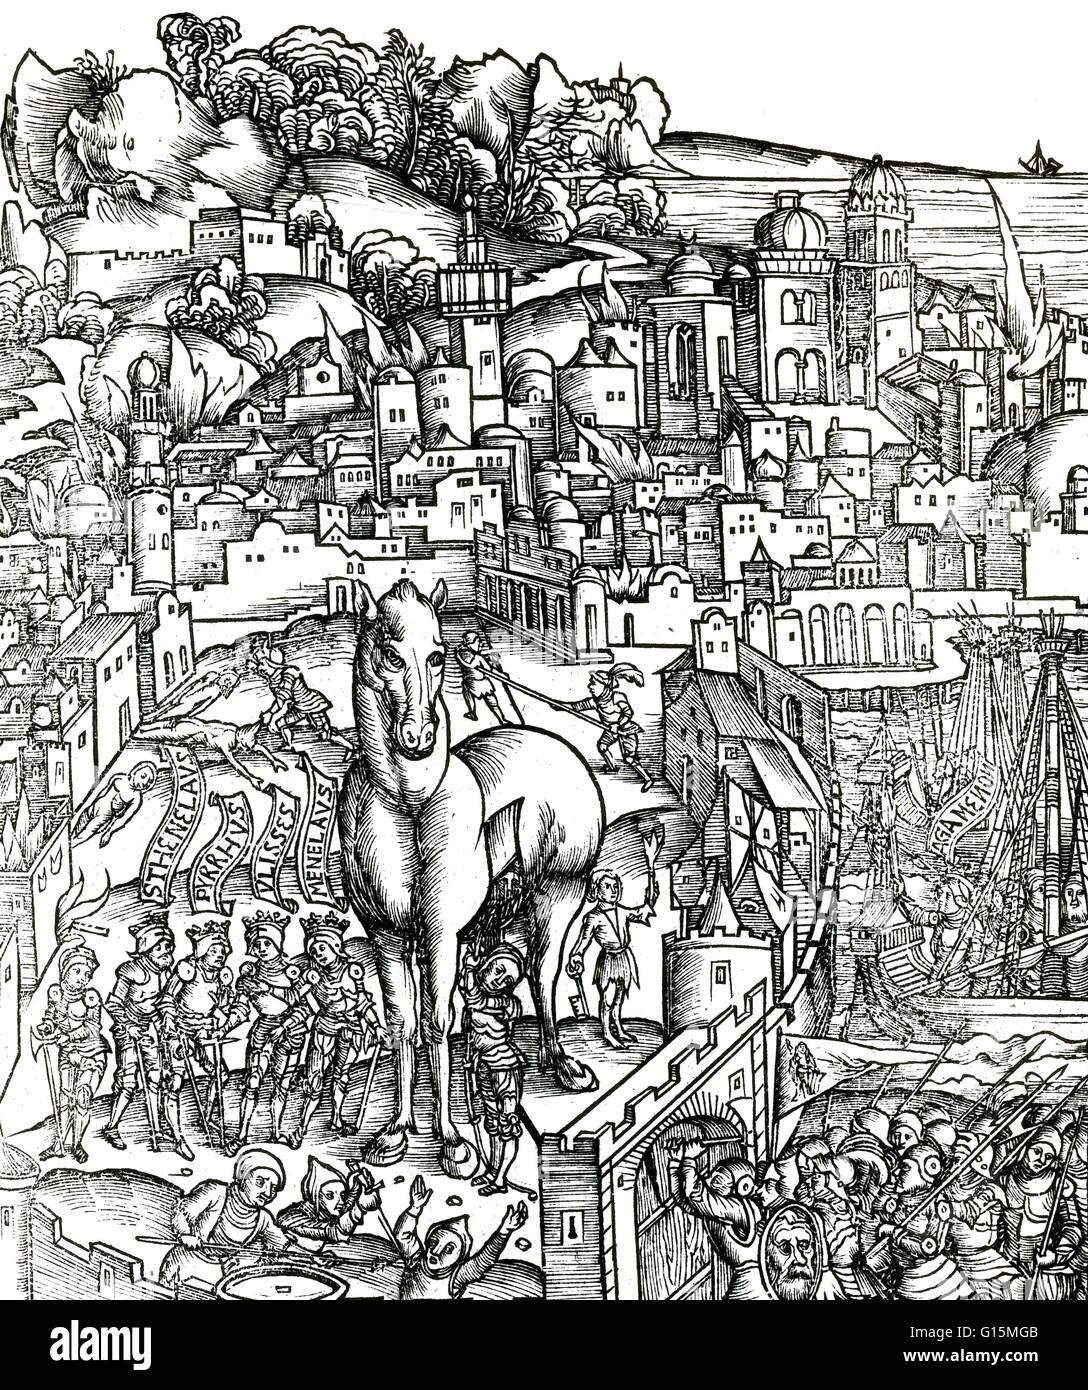 The scene is illustrated in the style of the Middle Ages. The Trojan Horse is a tale from the Trojan War about the - Stock Image